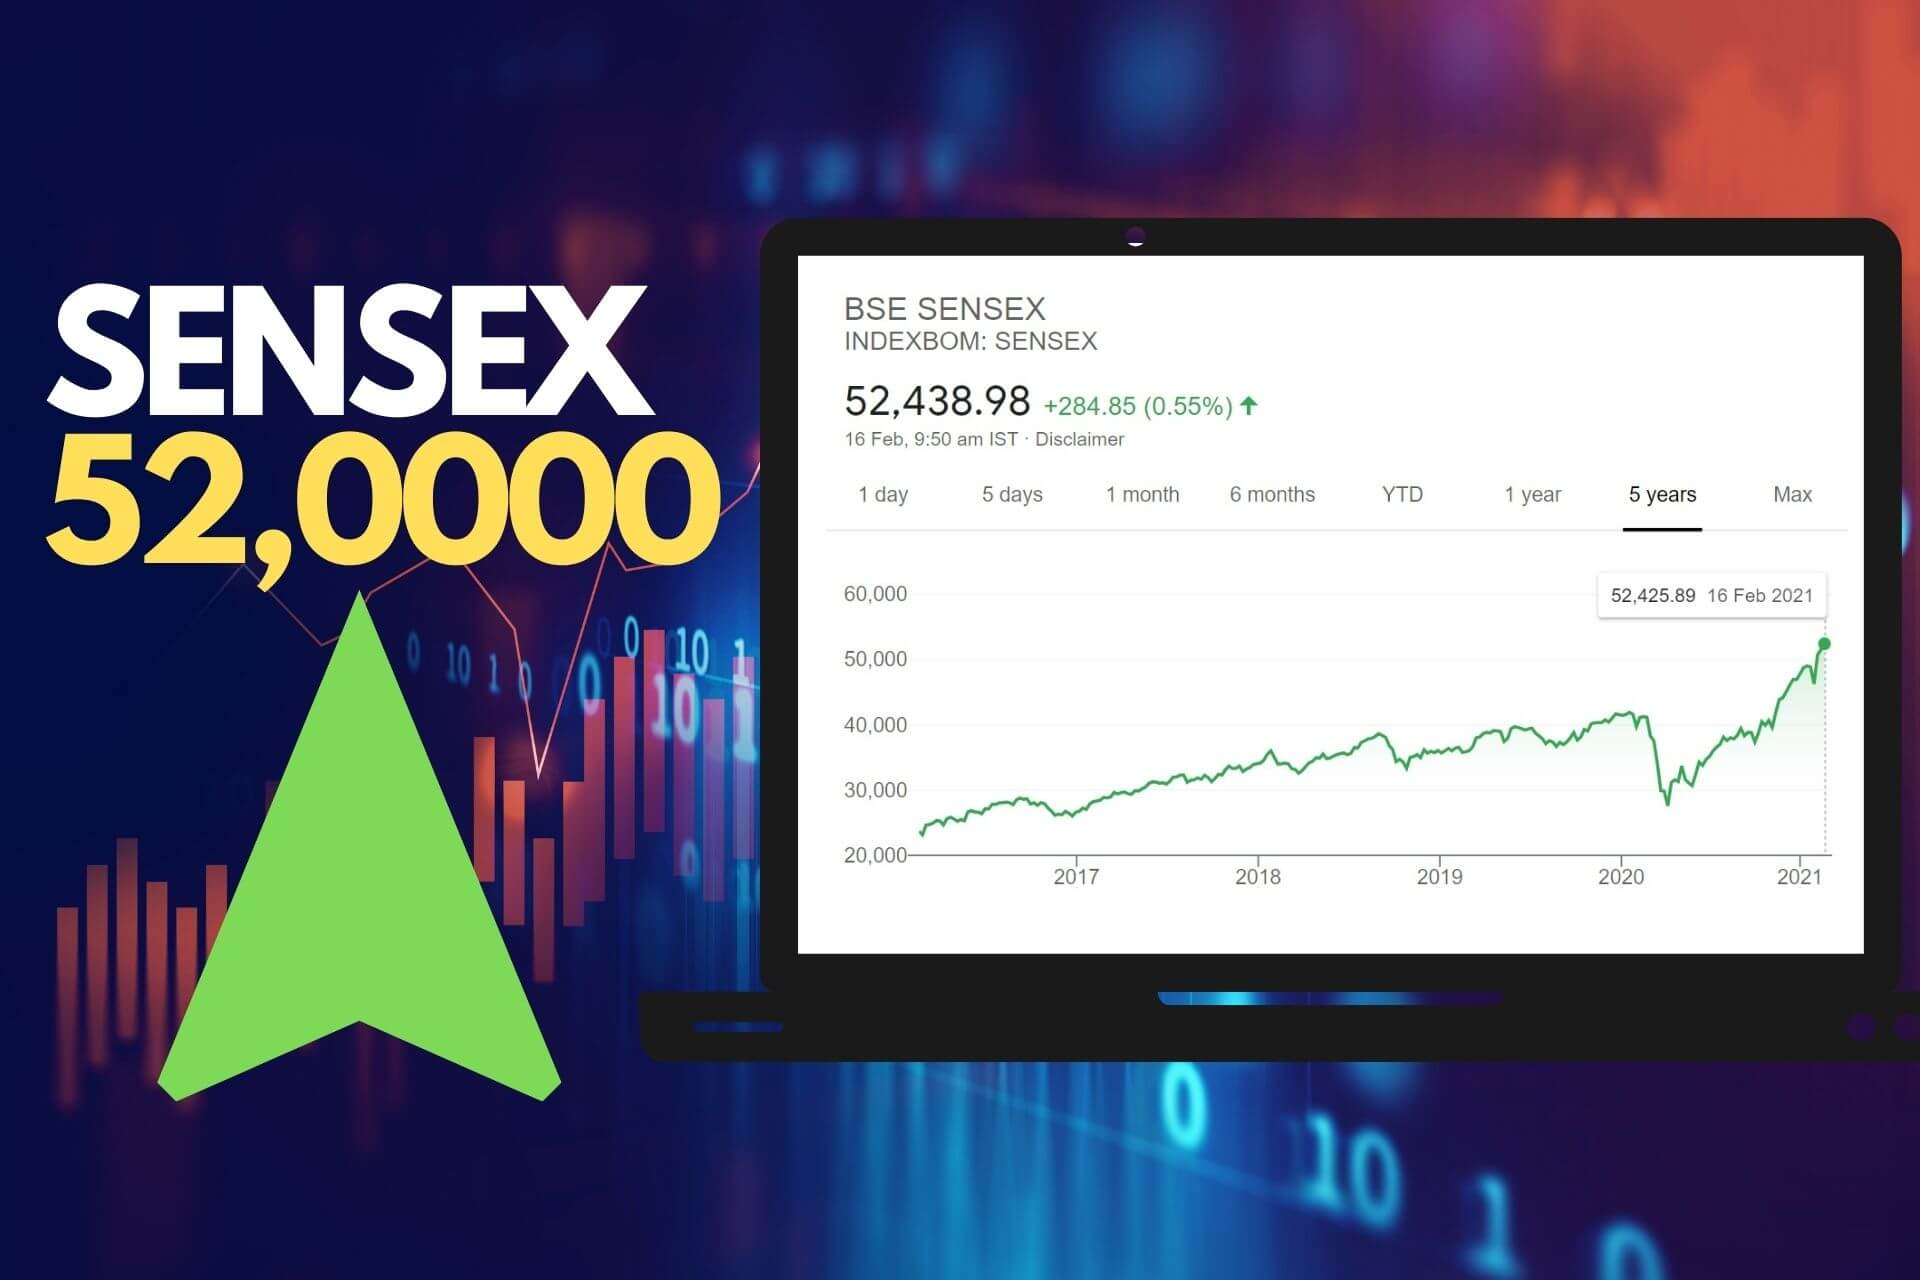 Sensex at 52,000 - Here's How it Grew from 100 to 52k Points cover